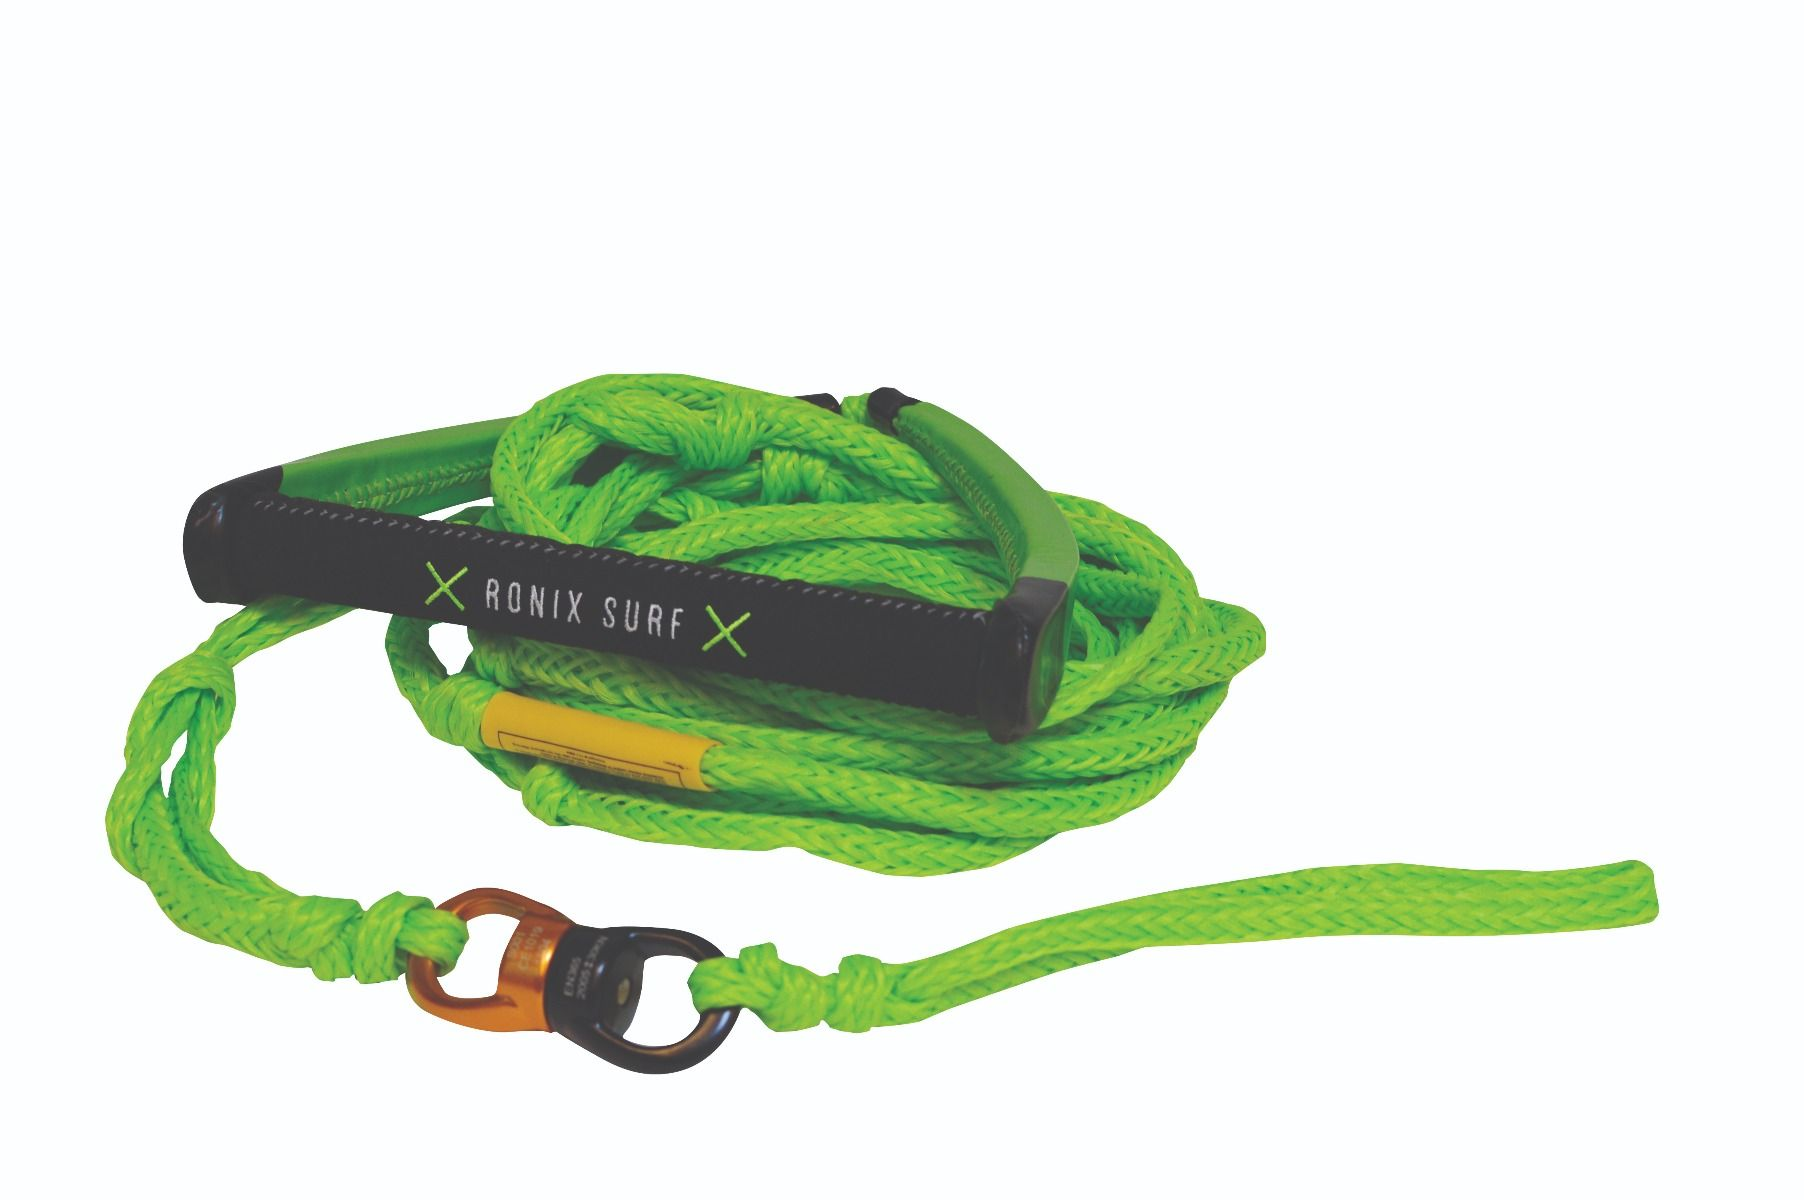 SURF ROPE SPINNER PU SYNTHETIC W/10'' HANDLE W/25FT ROPE PACKAGE RONIX 2019